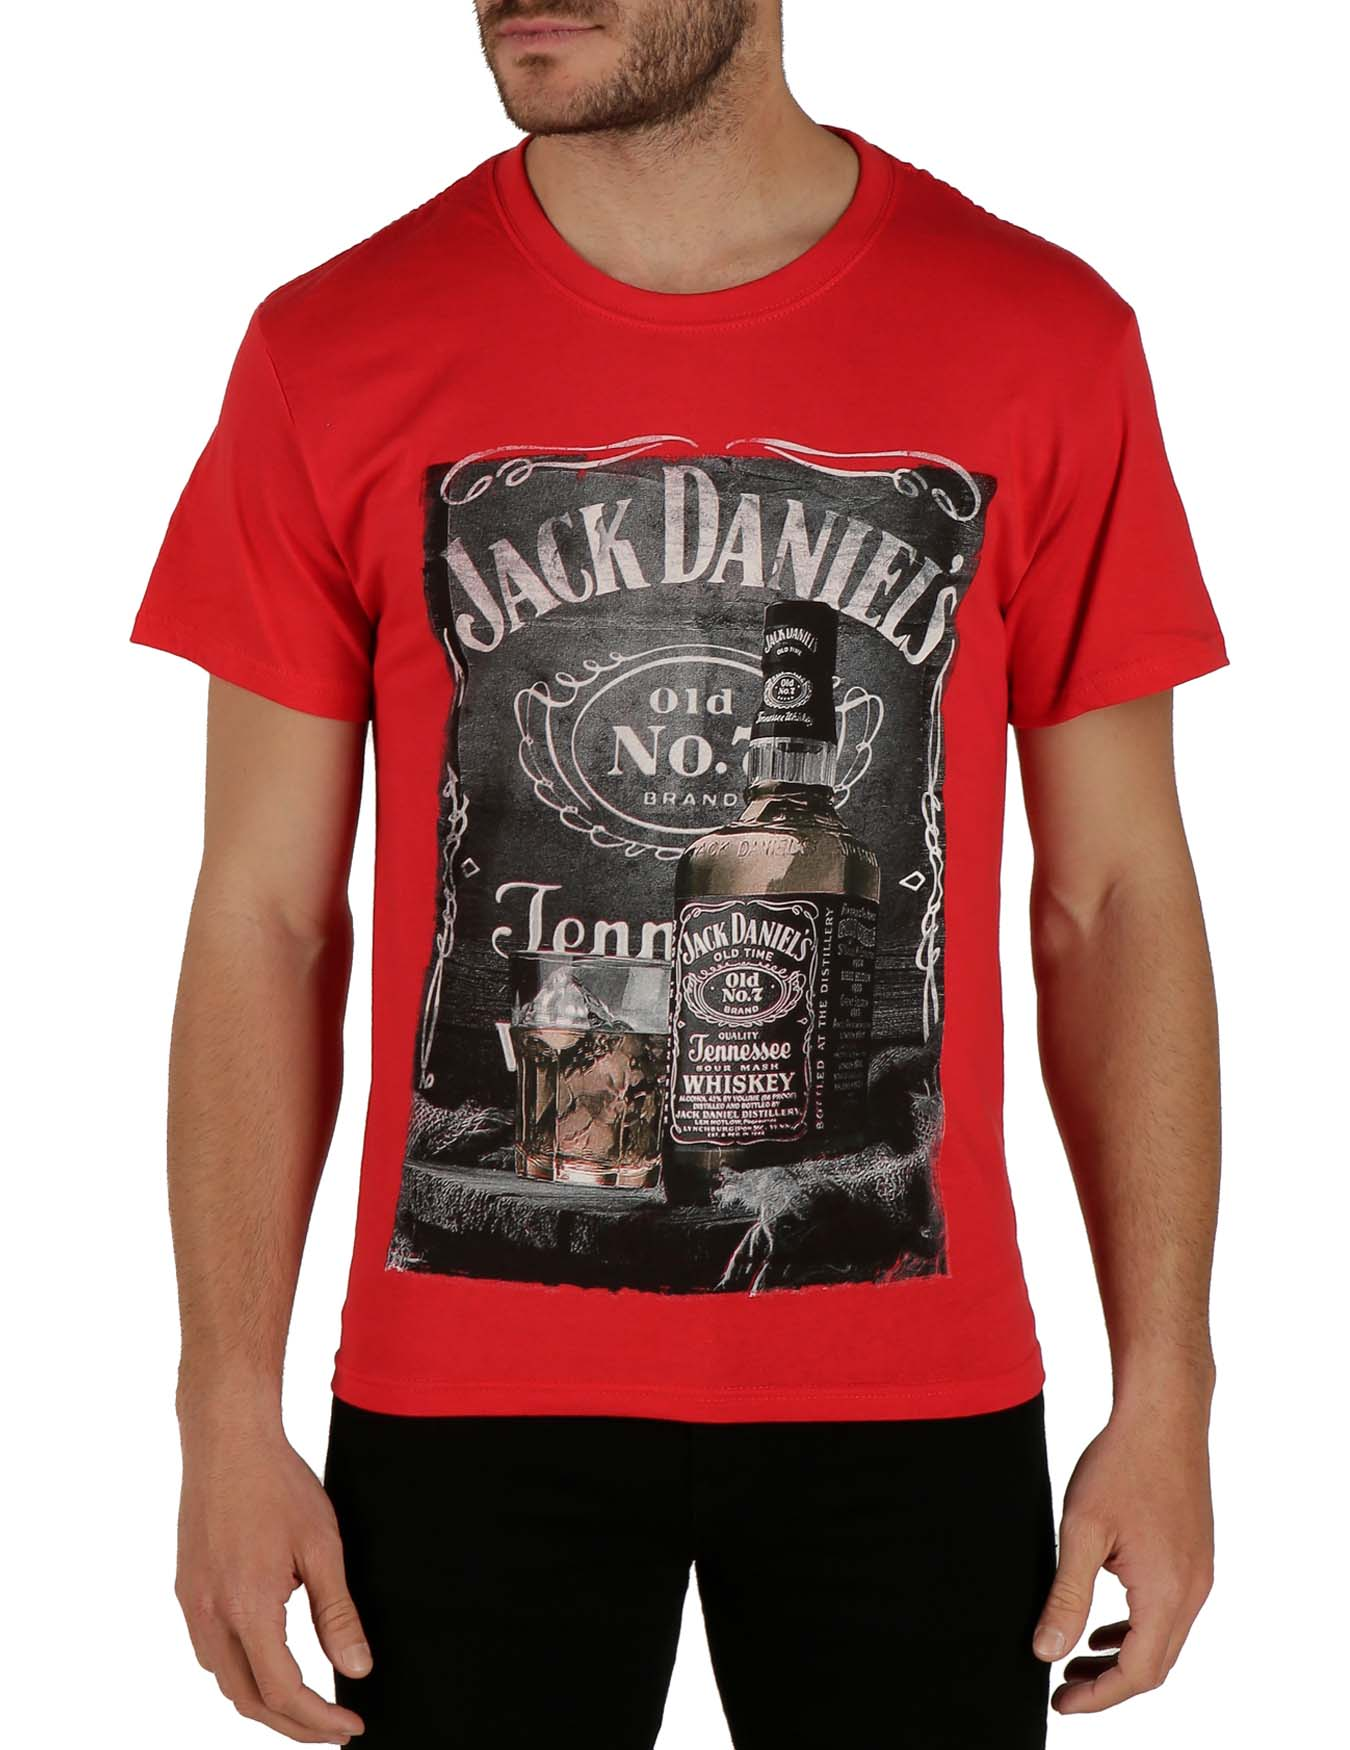 Ανδρικό T-Shirt Jack Daniel's Whiskey (κωδ. 1752249) - KEYA - 1752249